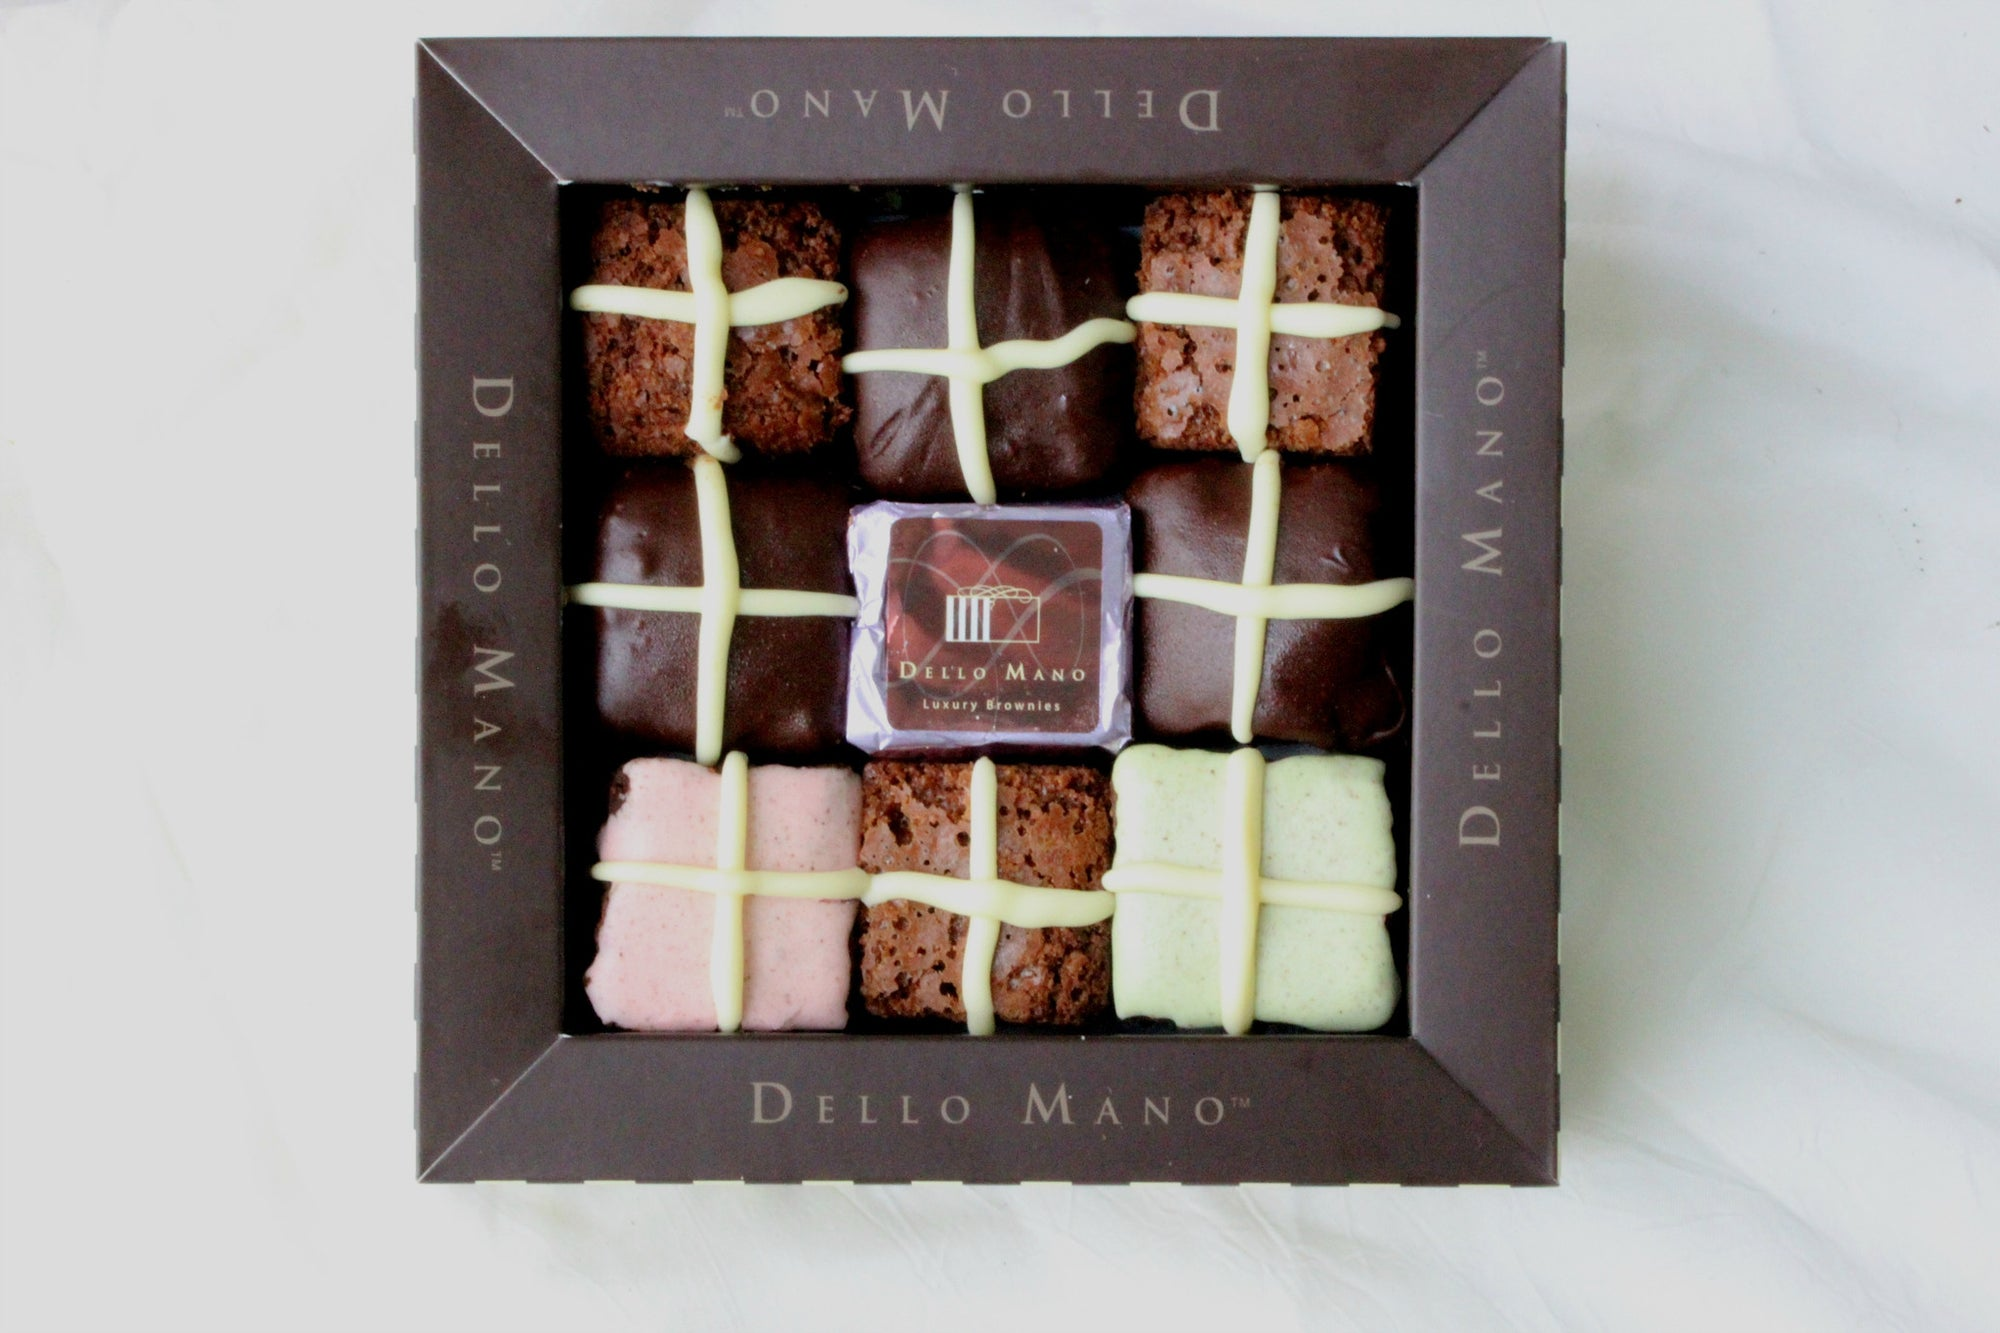 DELLO MANO SAYS MOVE OVER EASTER BUNNY, MAKE WAY FOR THE EASTER BROWNIE